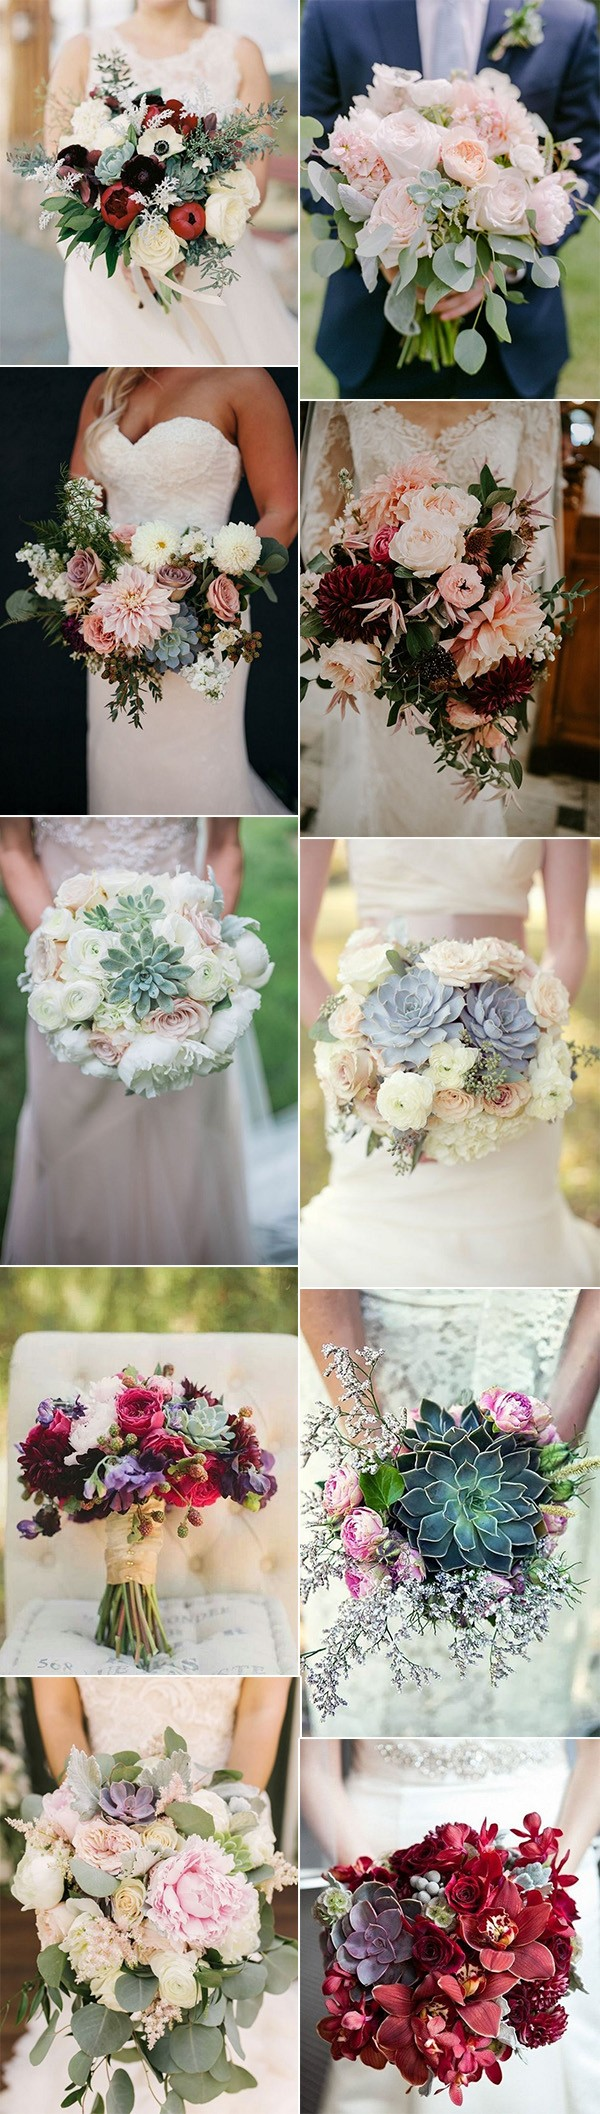 2018 trending succulents wedding bouquet ideas